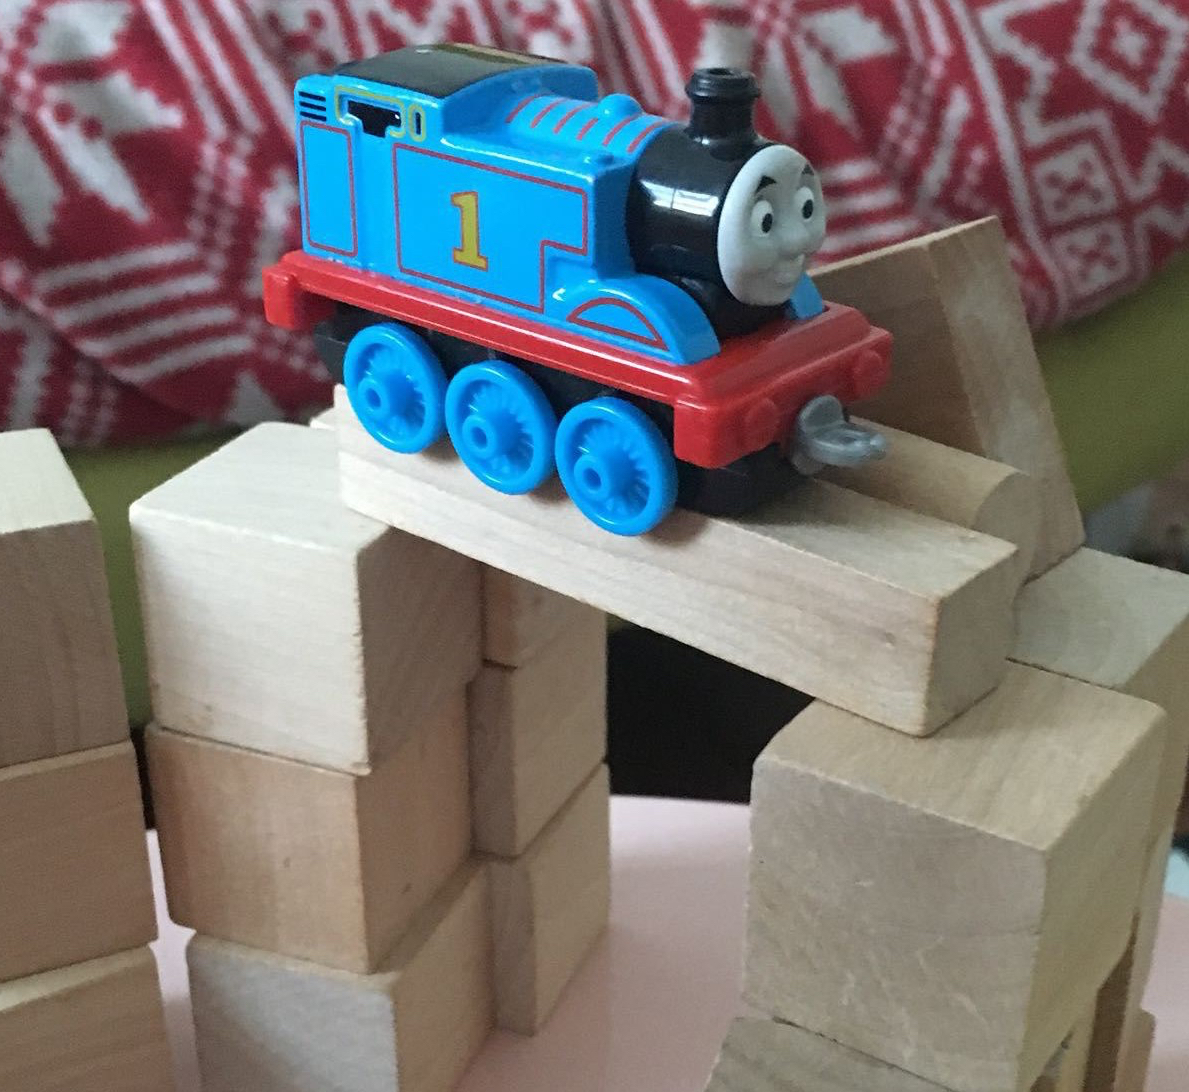 A toy Thomas the Tank Engine train sits atop a bridge constructed of traditional wooden bricks